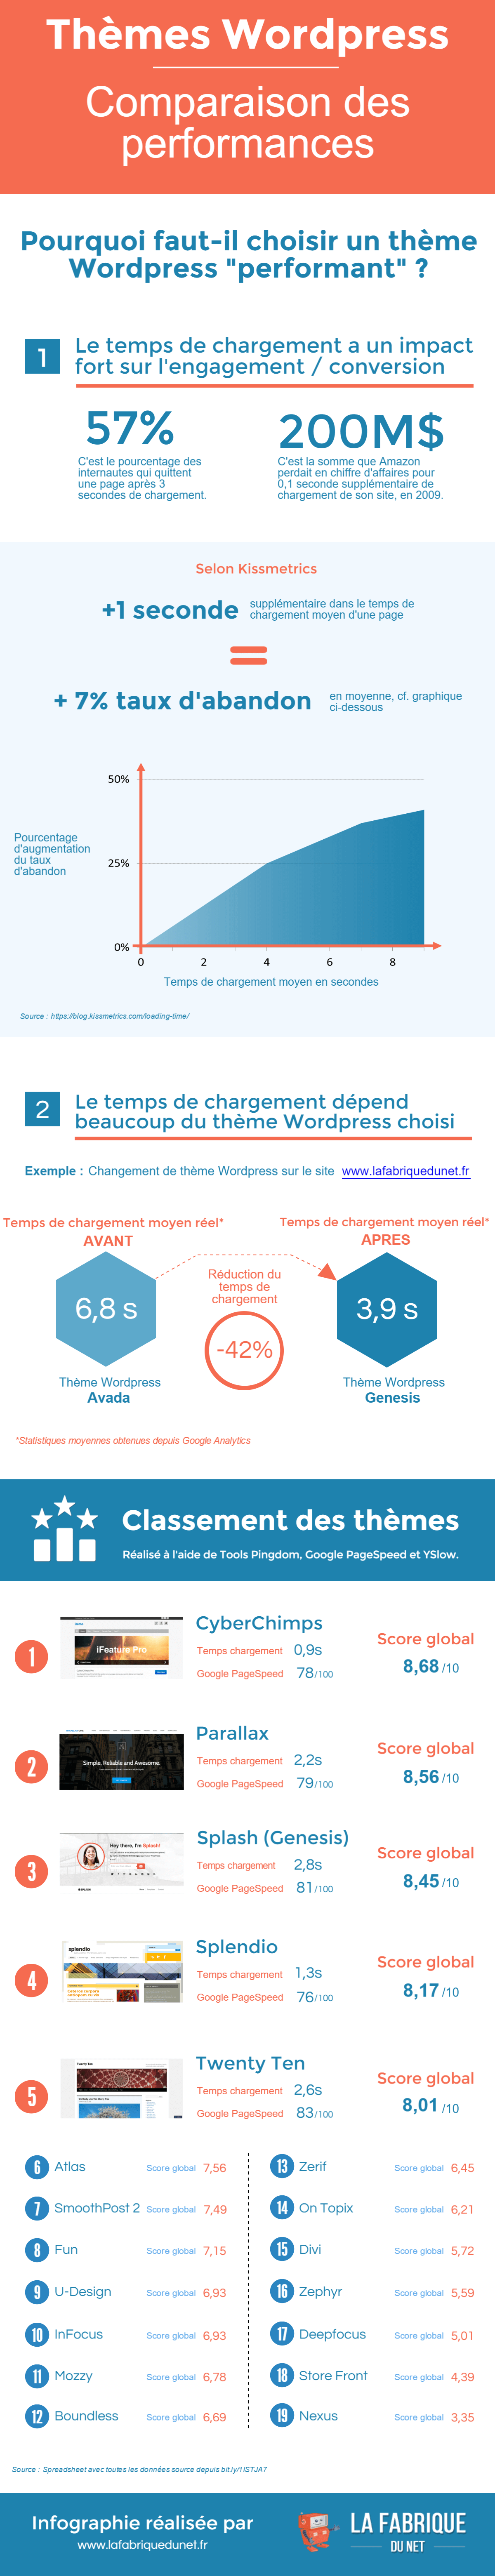 theme-wordpress-comparaison-performances-infographie